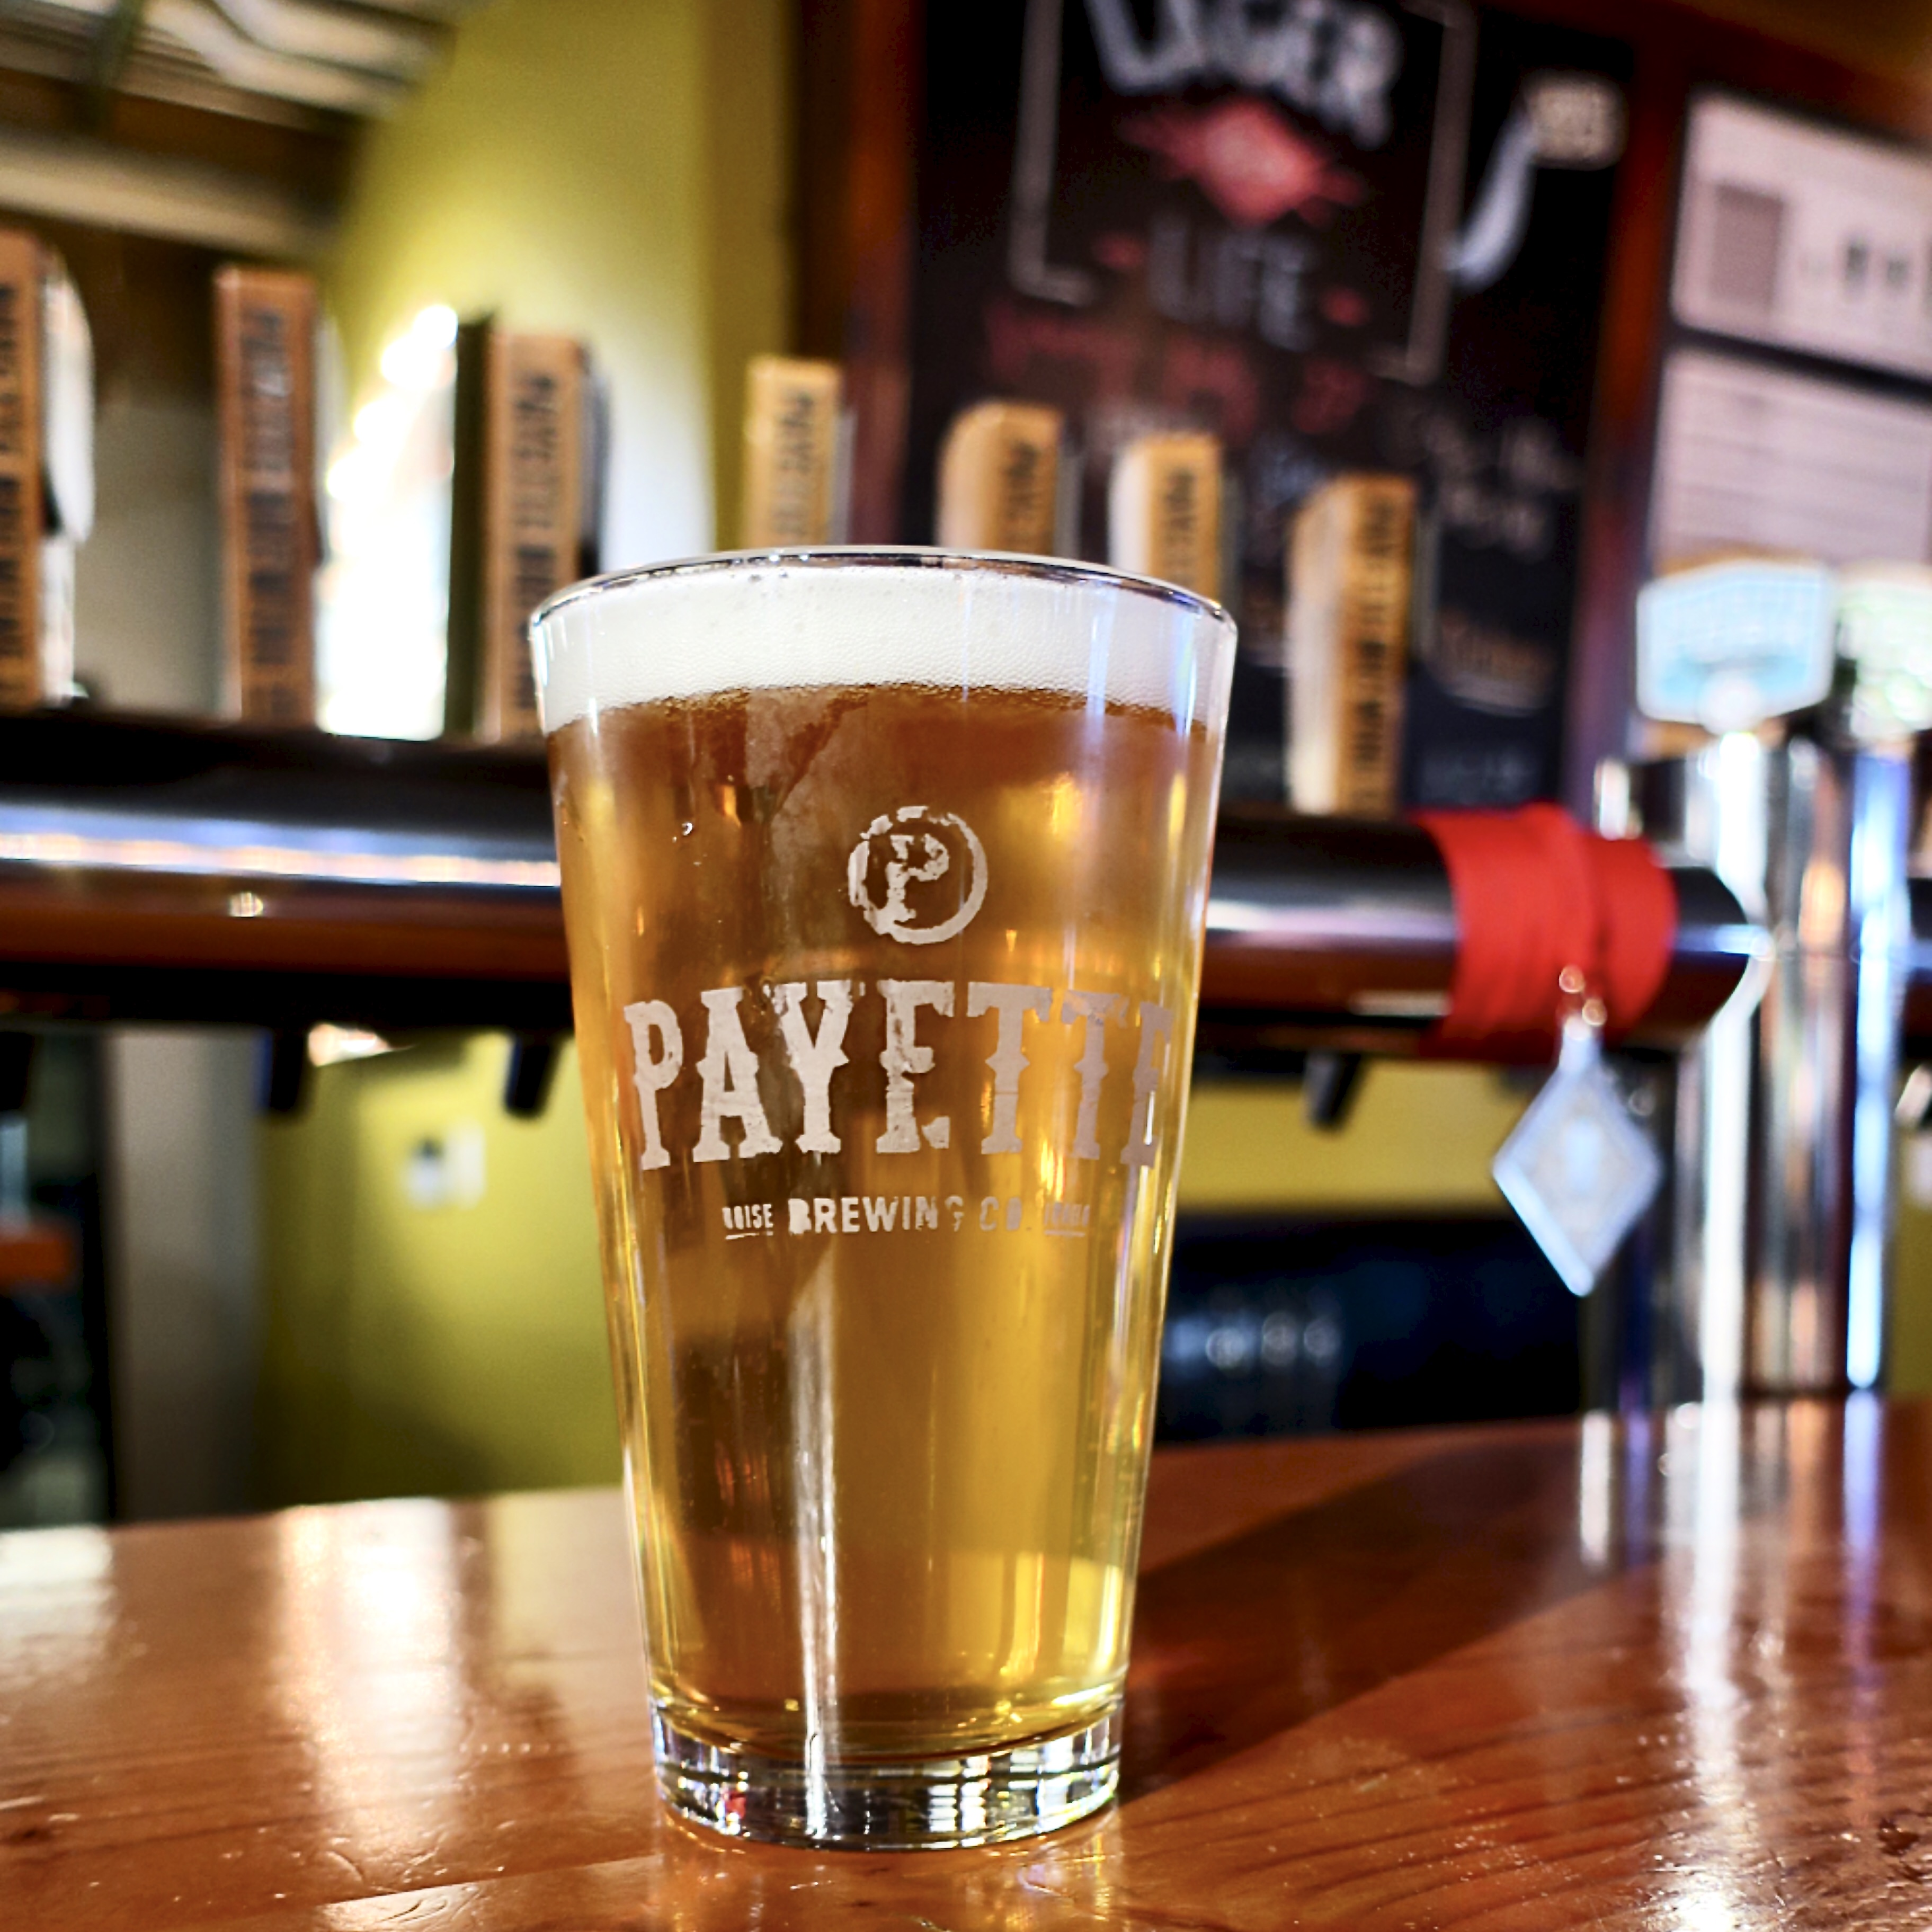 A pint inside the taproom at Payette Brewing.